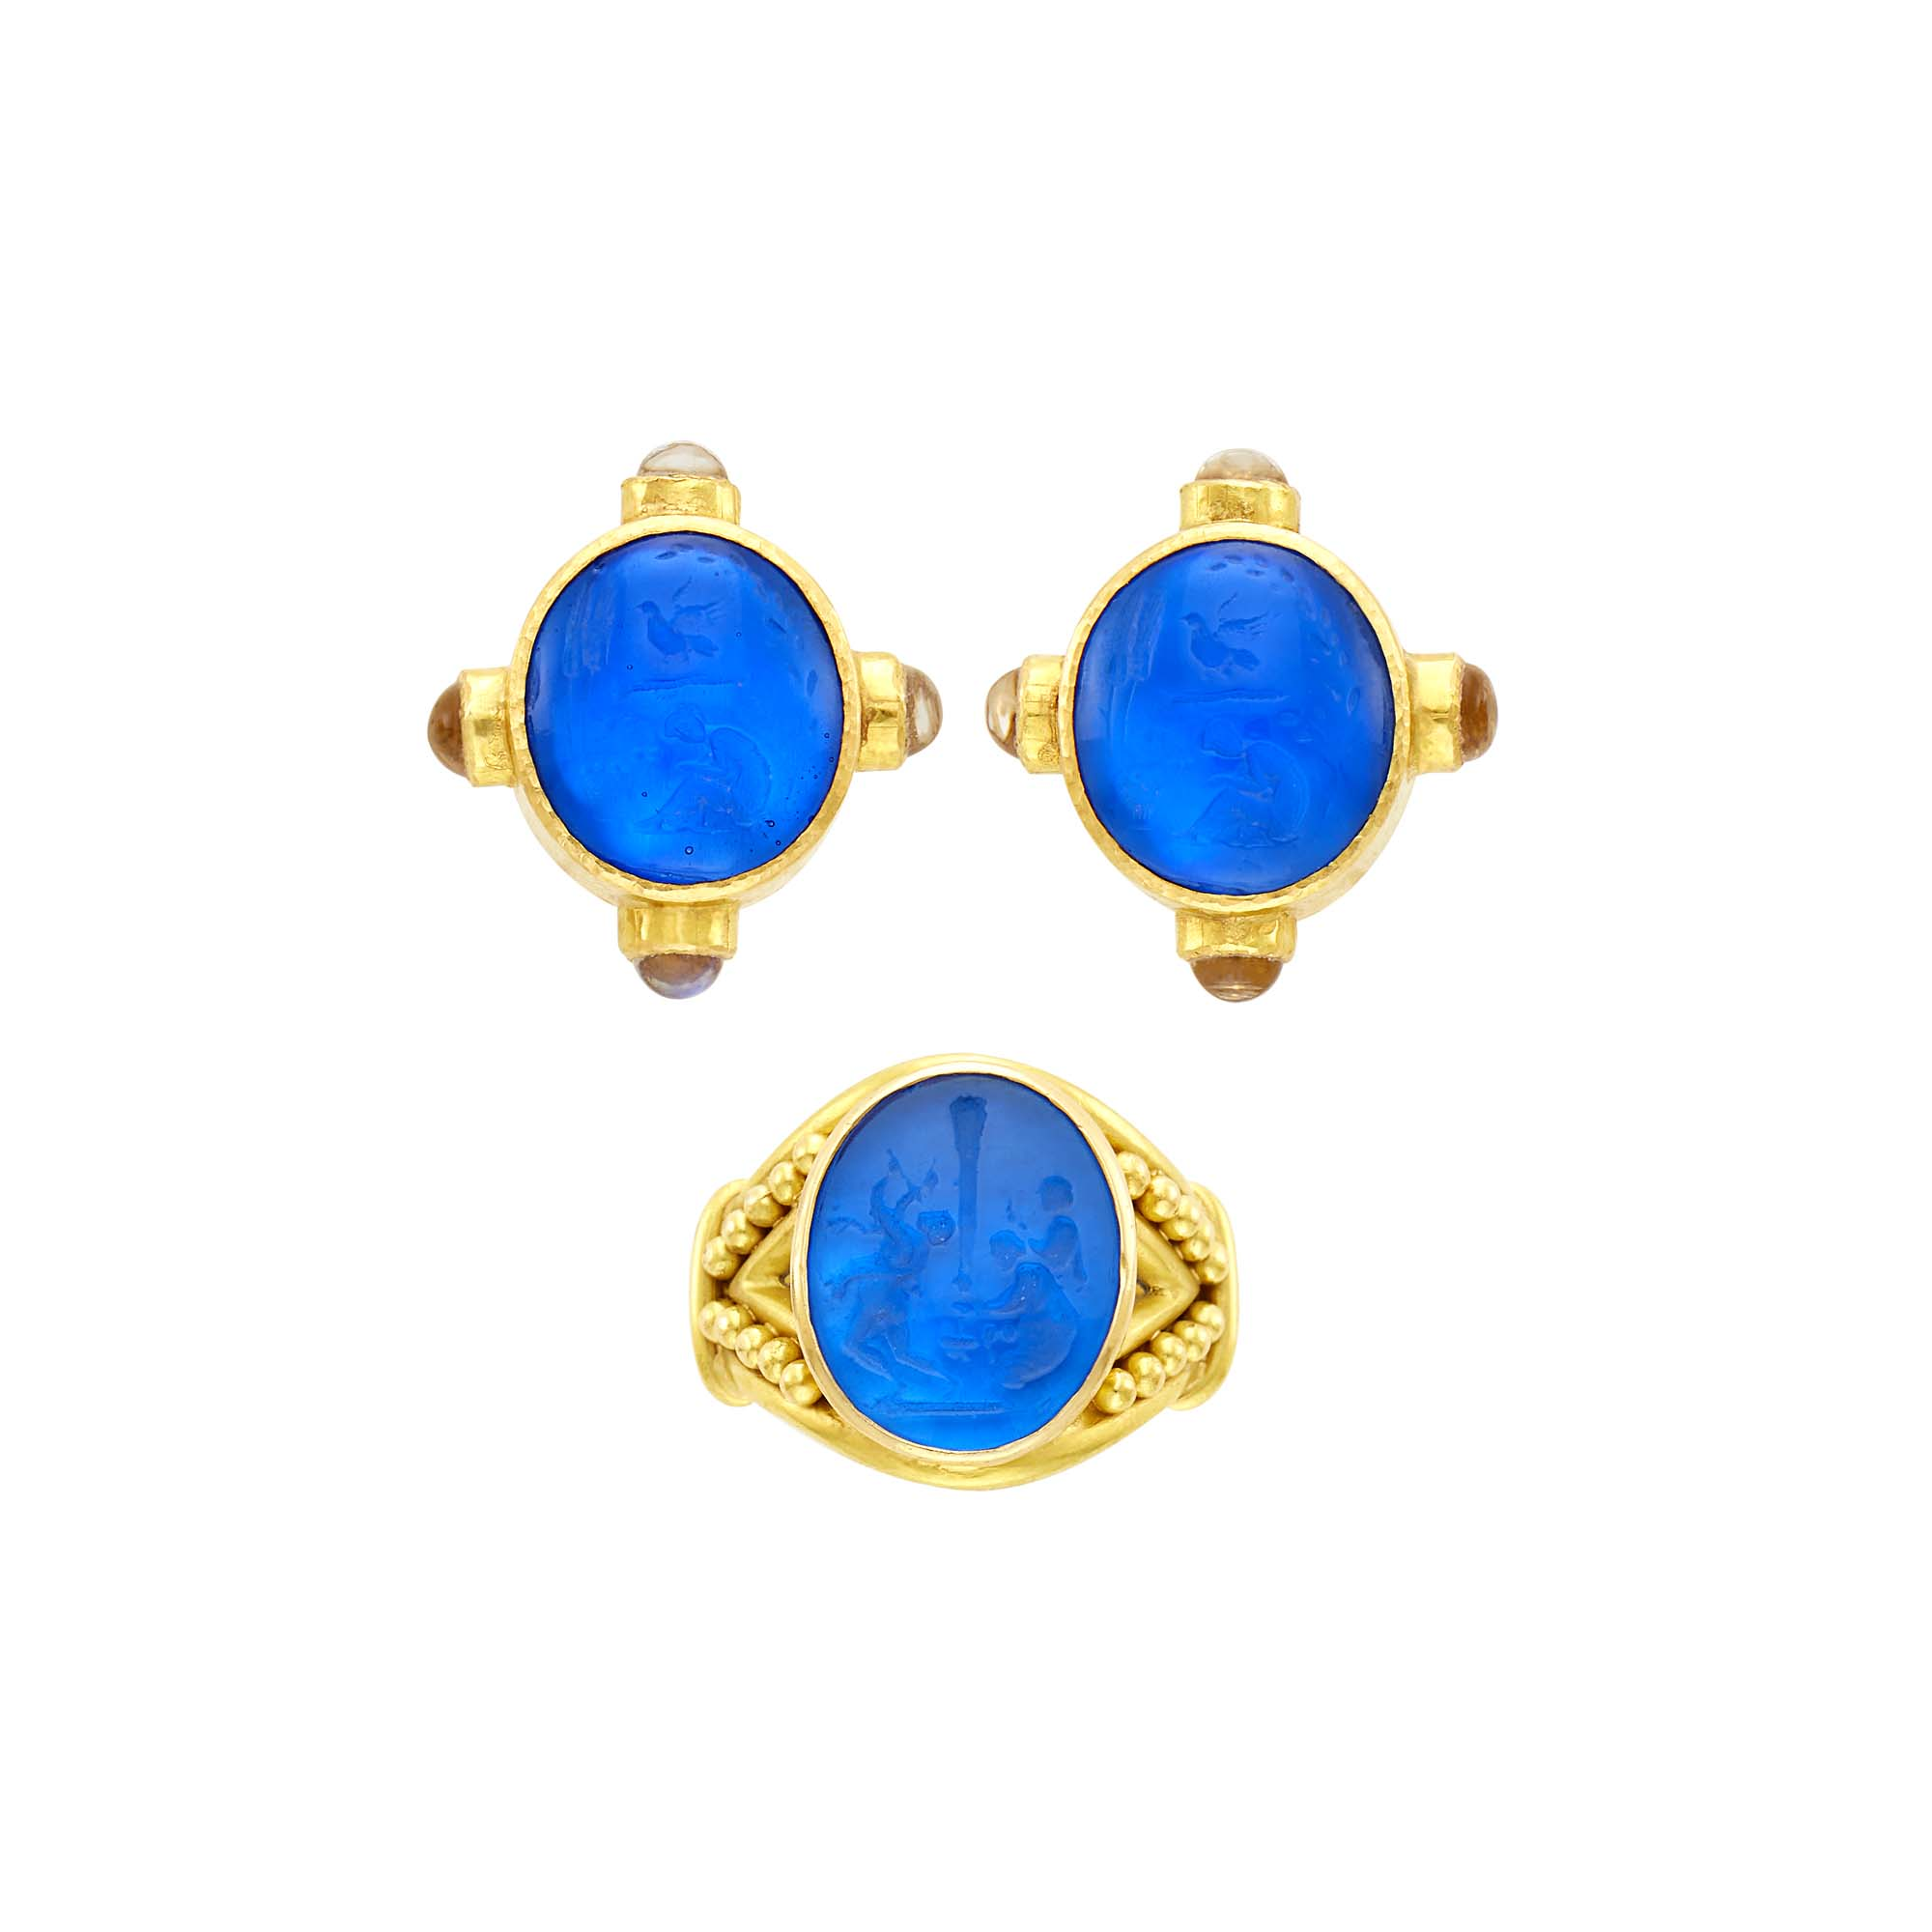 Lot image - Elizabeth Locke Pair of Hammered Gold and Venetian Blue Glass Intaglio, Mother-of-Pearl and Moonstone Earclips and Ring